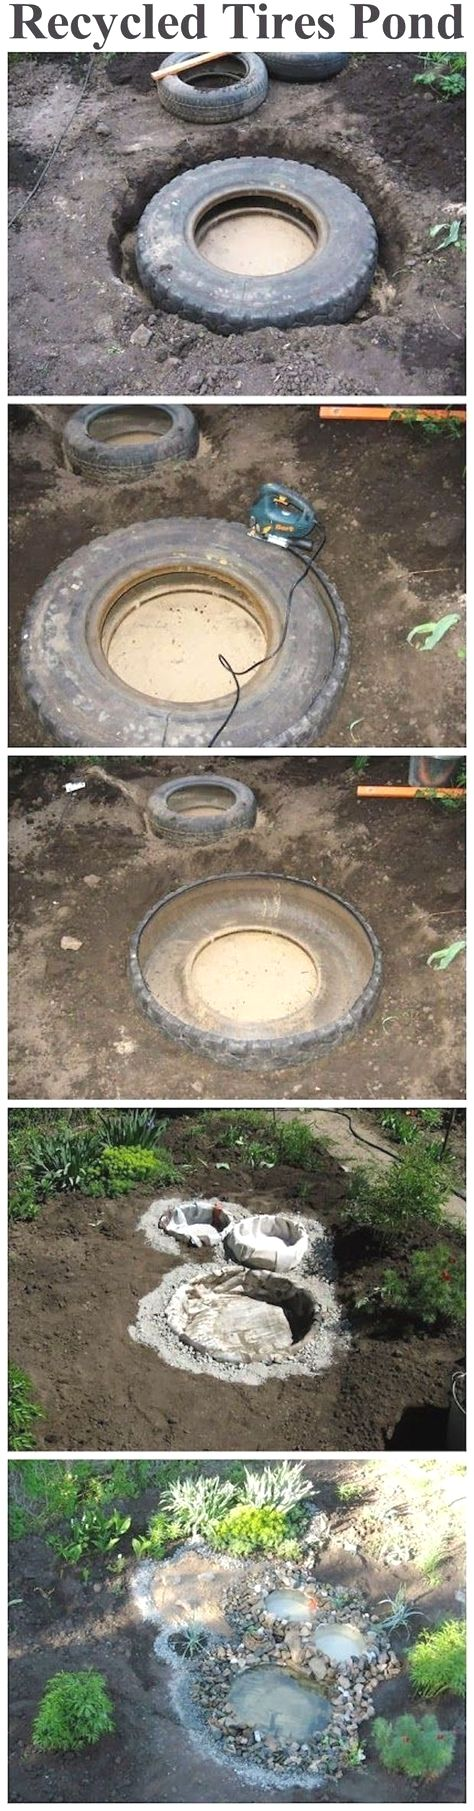 Recycled tires pond outdoors diy pond craft crafts do it yourself recycled tires pond outdoors diy pond craft crafts do it yourself diy projects how to garden solutioingenieria Gallery